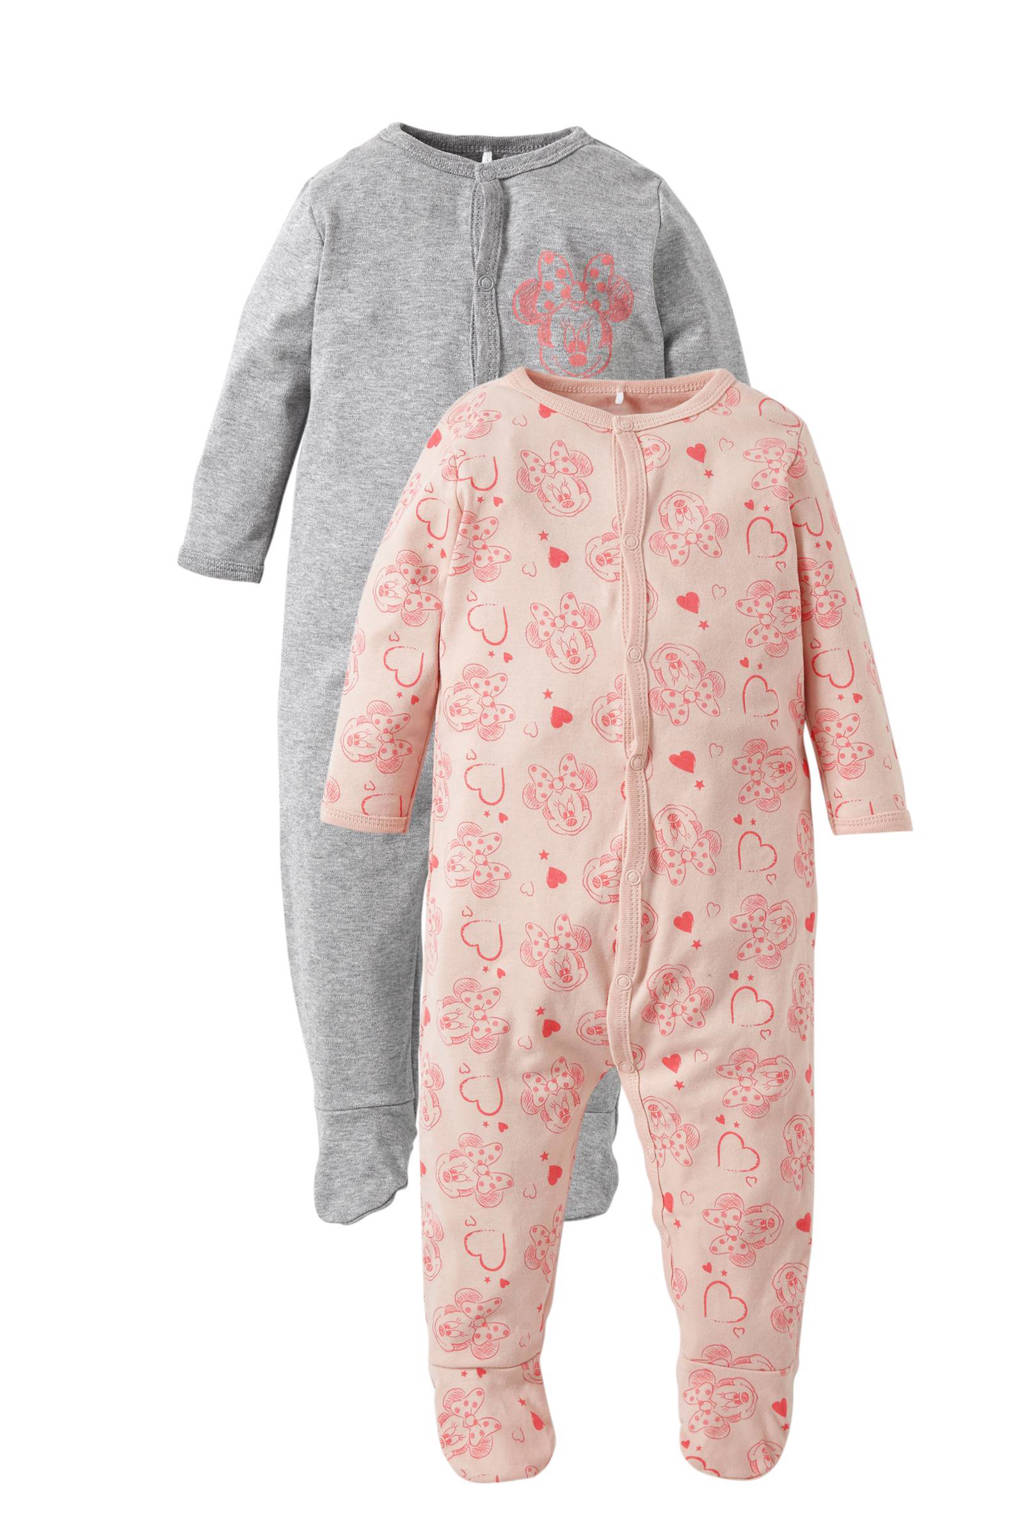 Name It Babykleding.Name It Baby Newborn Baby Pyjama Set Van 2 Wehkamp